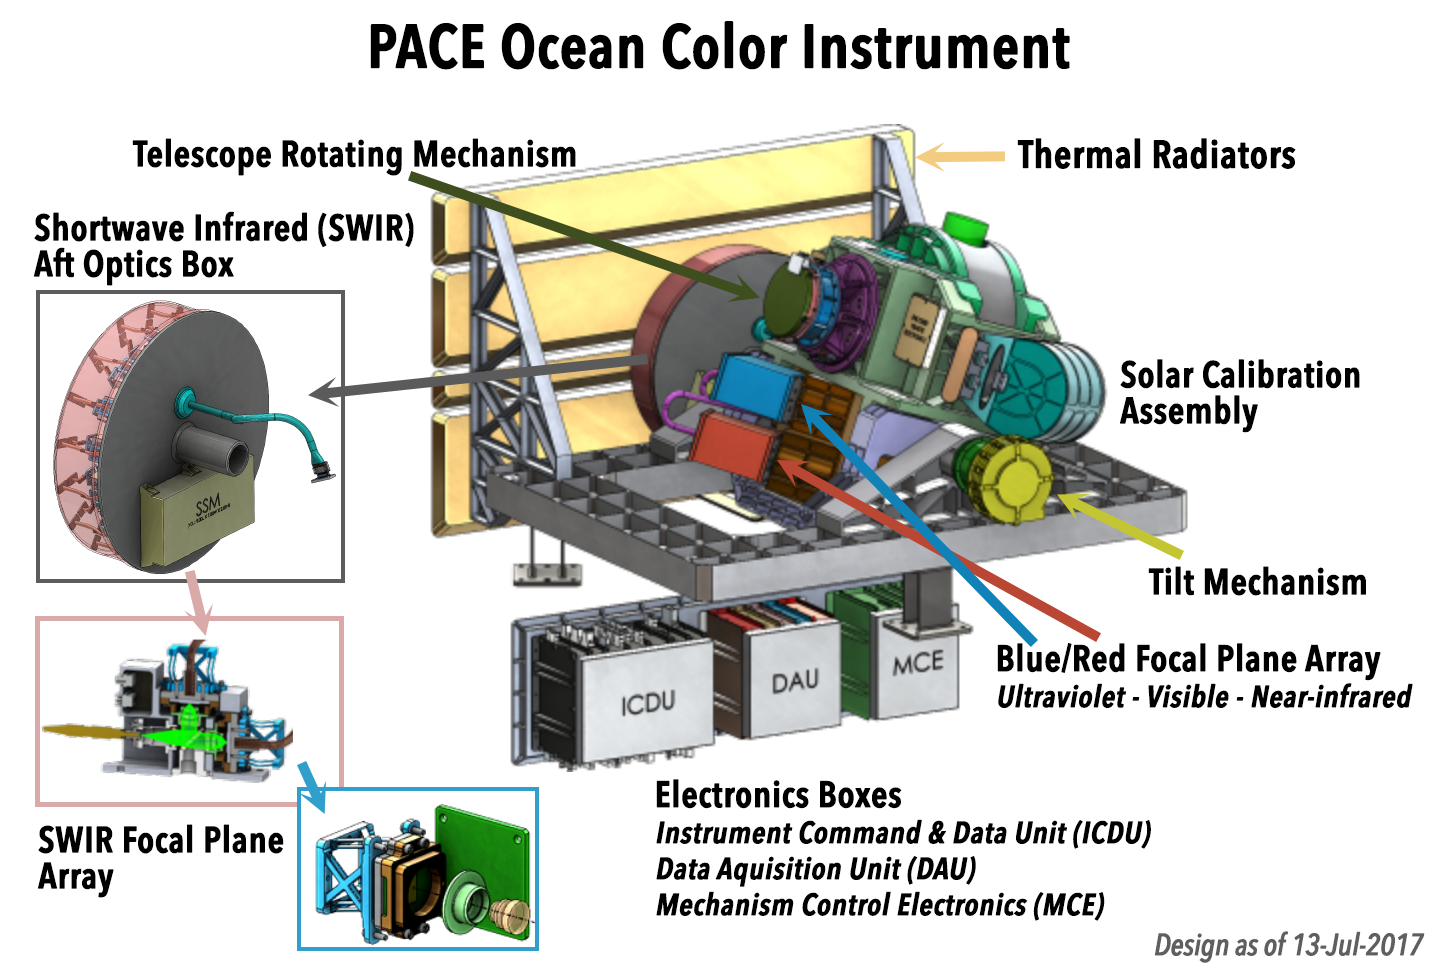 An annotated diagram of the Ocean Color Instrument (OCI) - the primary instrument for the PACE Mission.